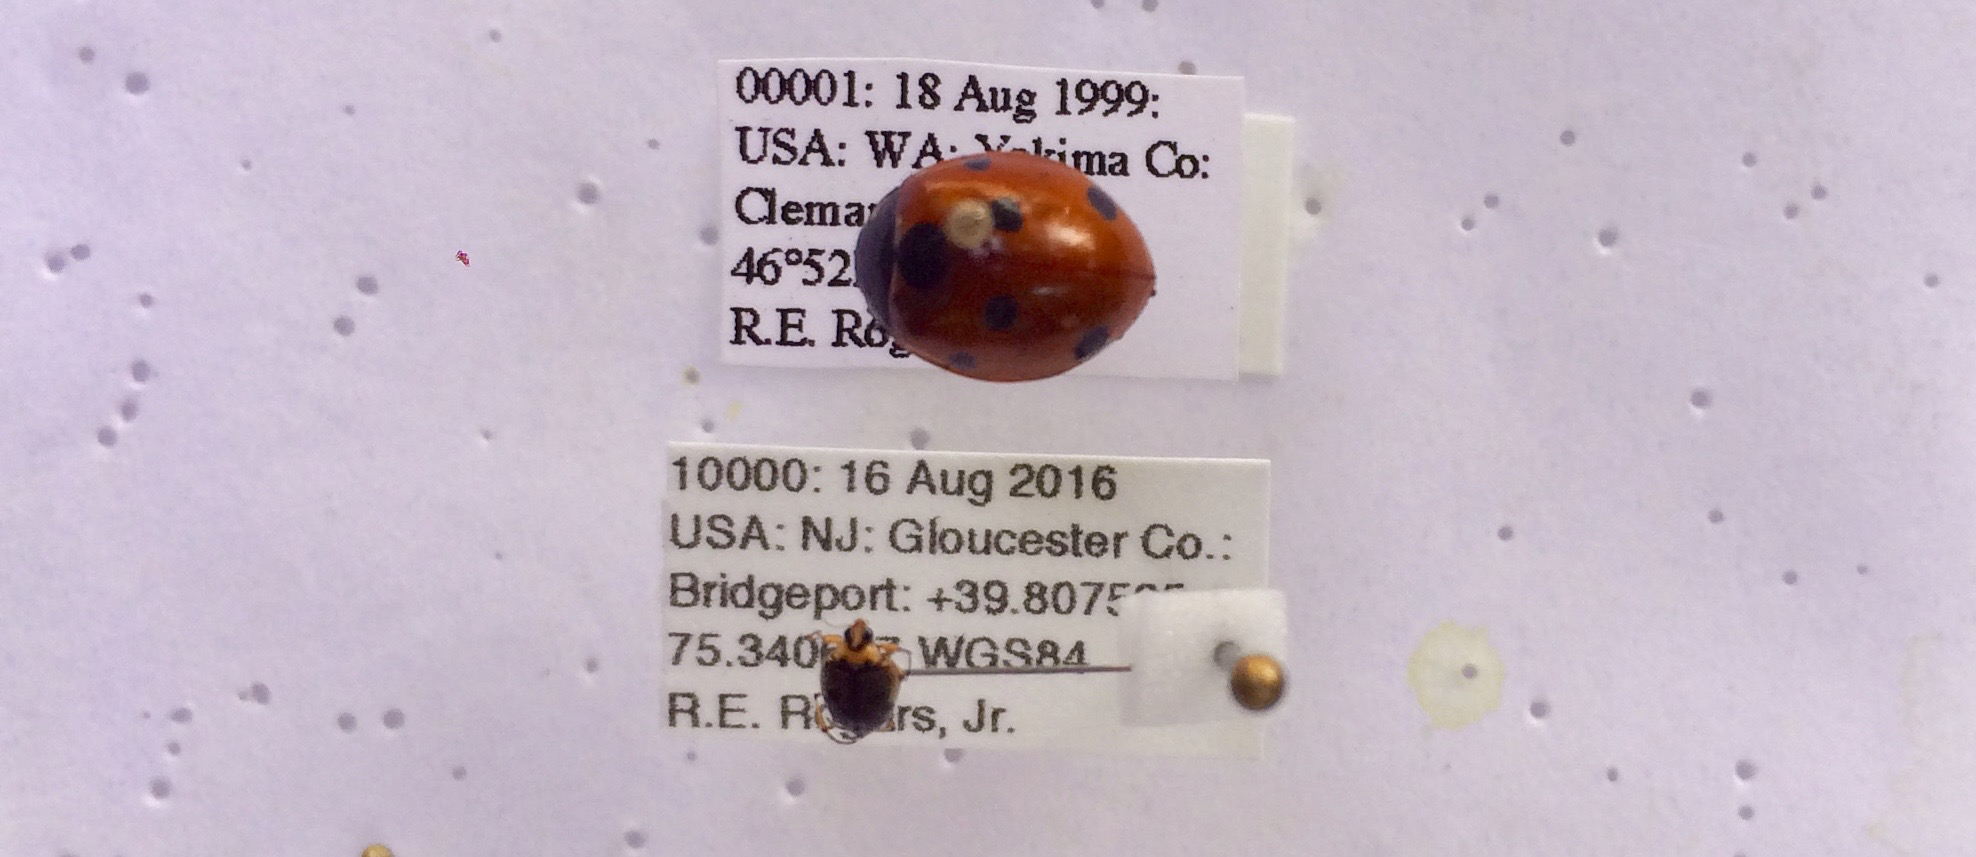 #00001 - Seven Spotted Lady Beetle,  Coccinella septempunctata  Linnaeus 1758, collected at Cleman Mountain, Yakima Co., WA, on 18 August 1999; #10000 - Crawling Water Beetle,  Peltodytes edentulus  (LeConte 1863), collected at Bridgeport Township, Gloucester Co., NJ on 16 August 2016.